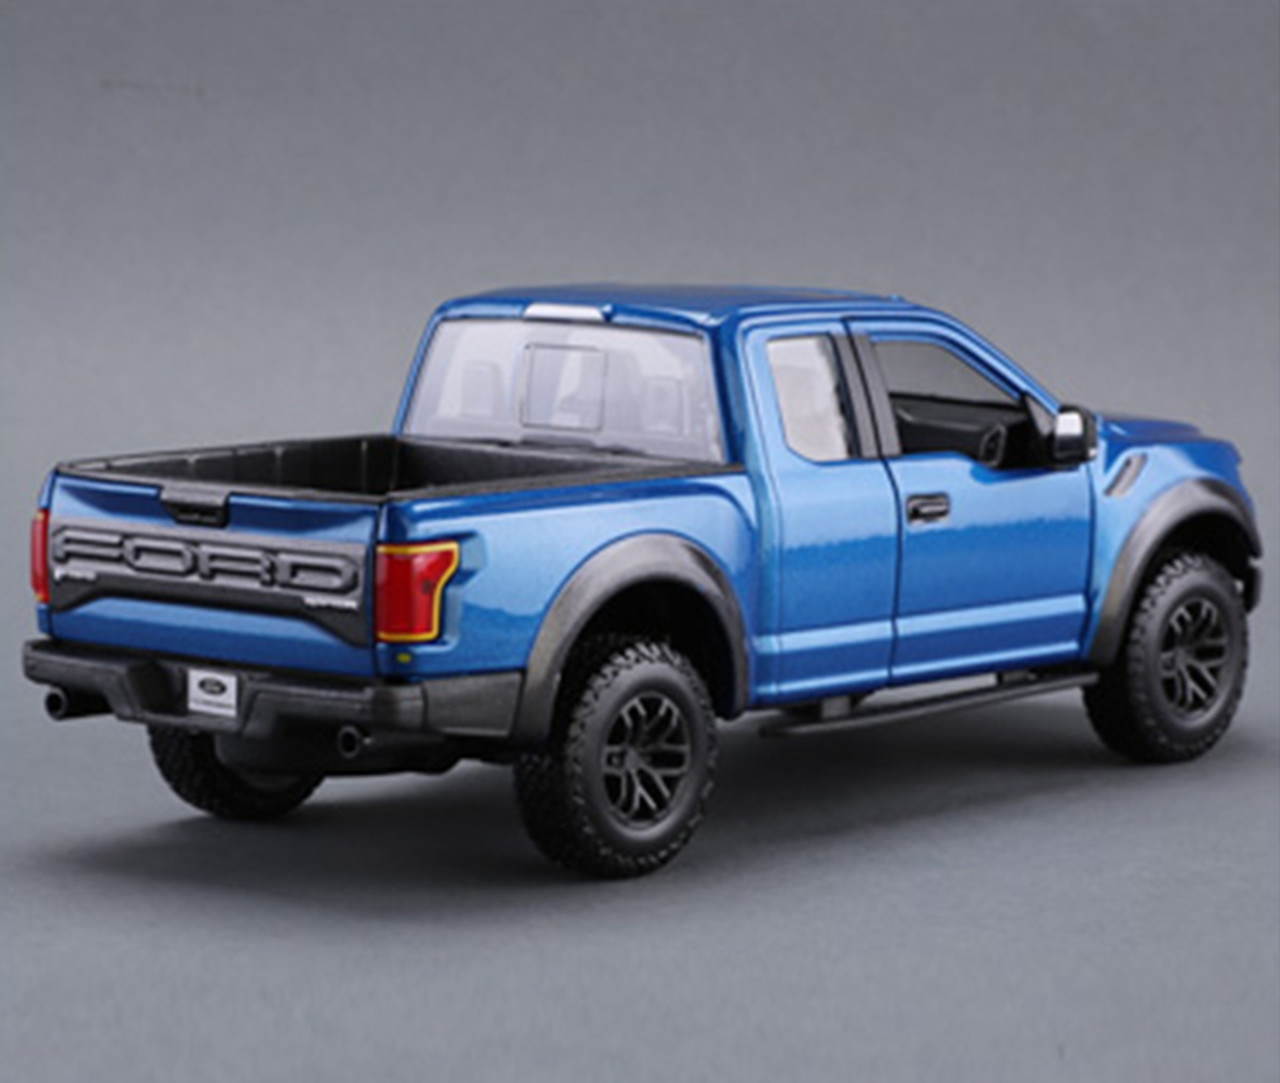 124 Maisto Ford F 150 F150 Raptor Street Version Blue Diecast Car Model